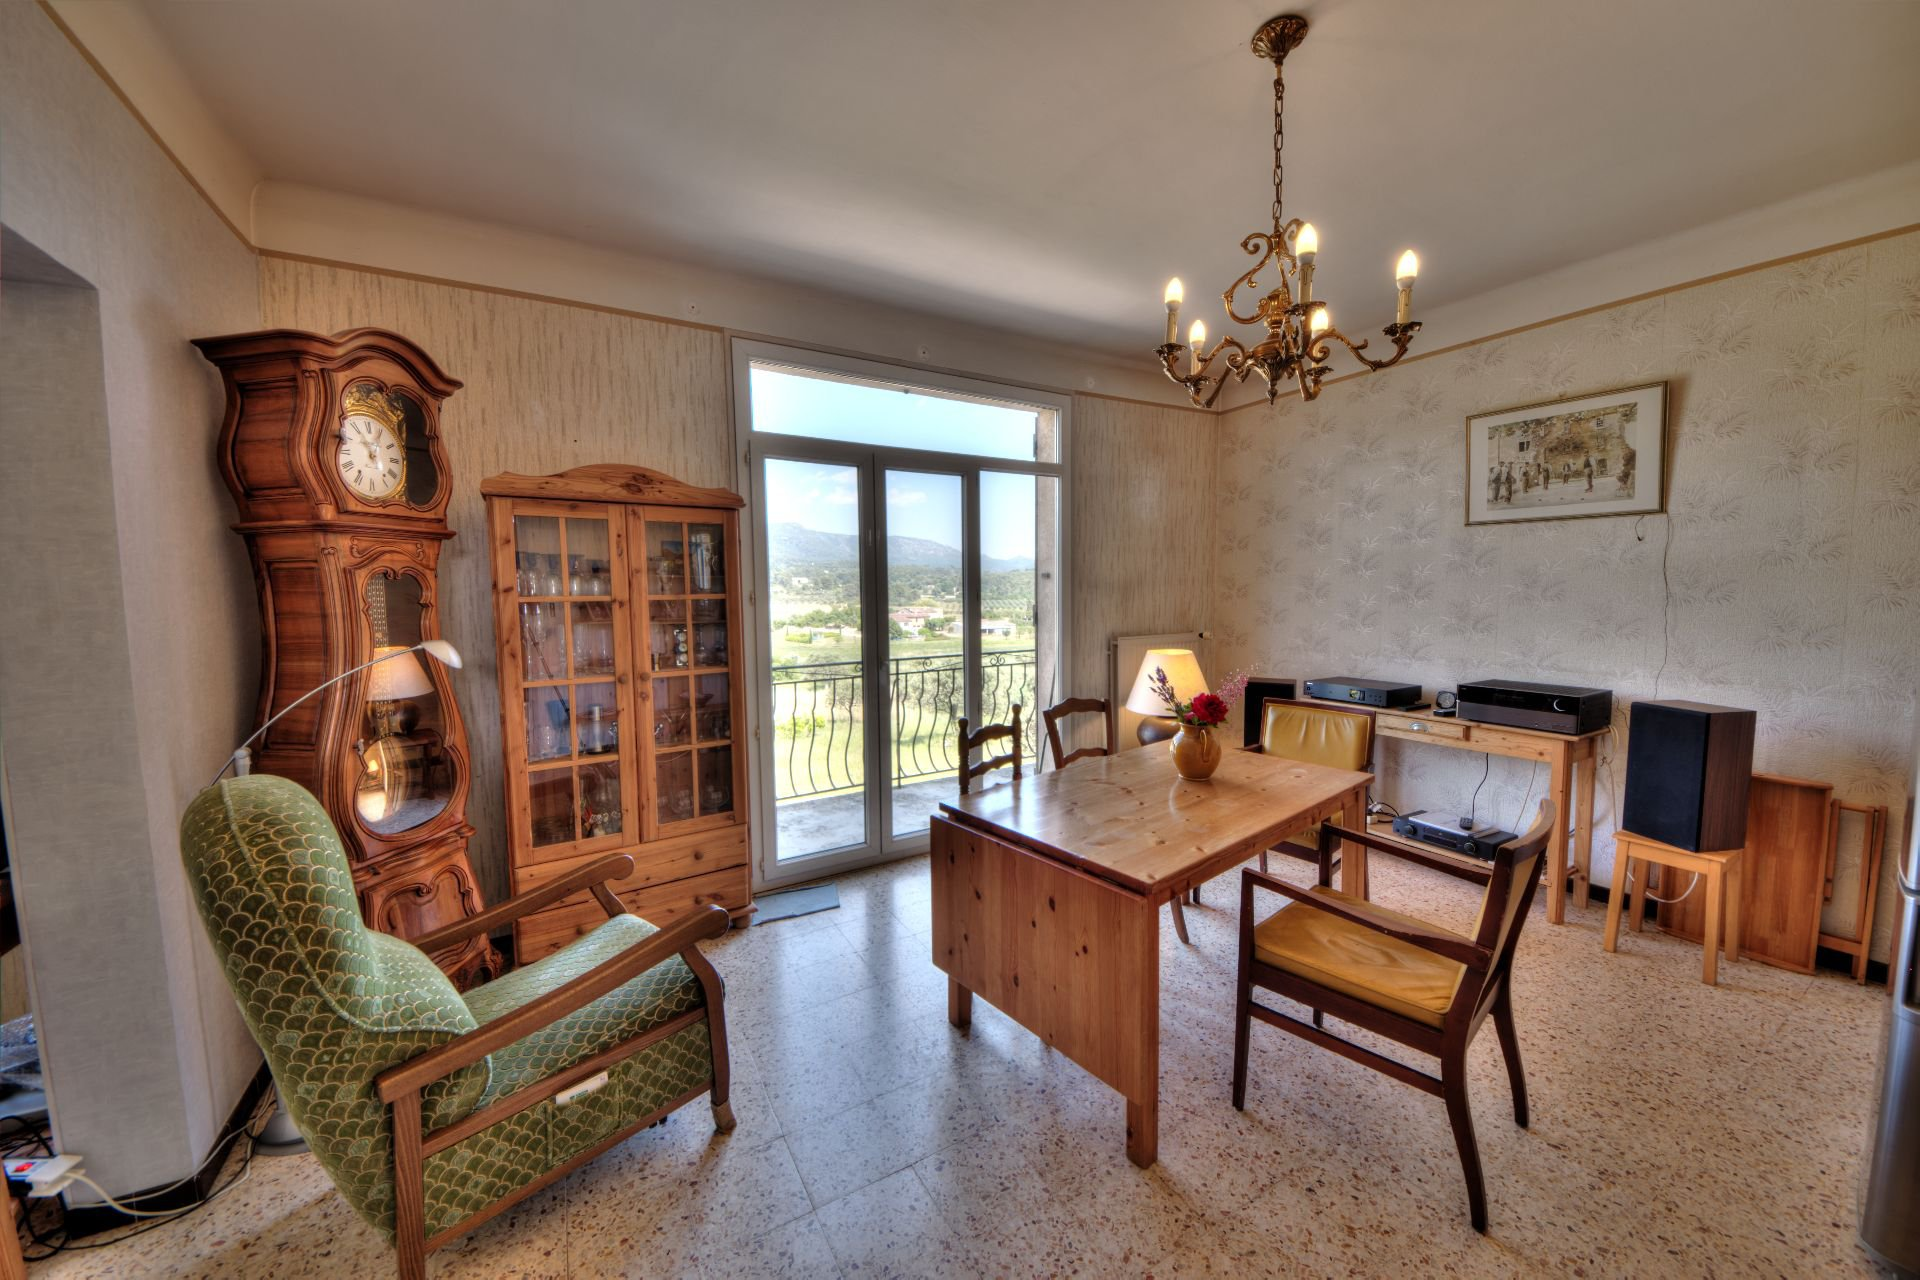 Dining room of the House raised one floor on garden level, plot of 5000 m² divisible, Aups, Provence, Verdon